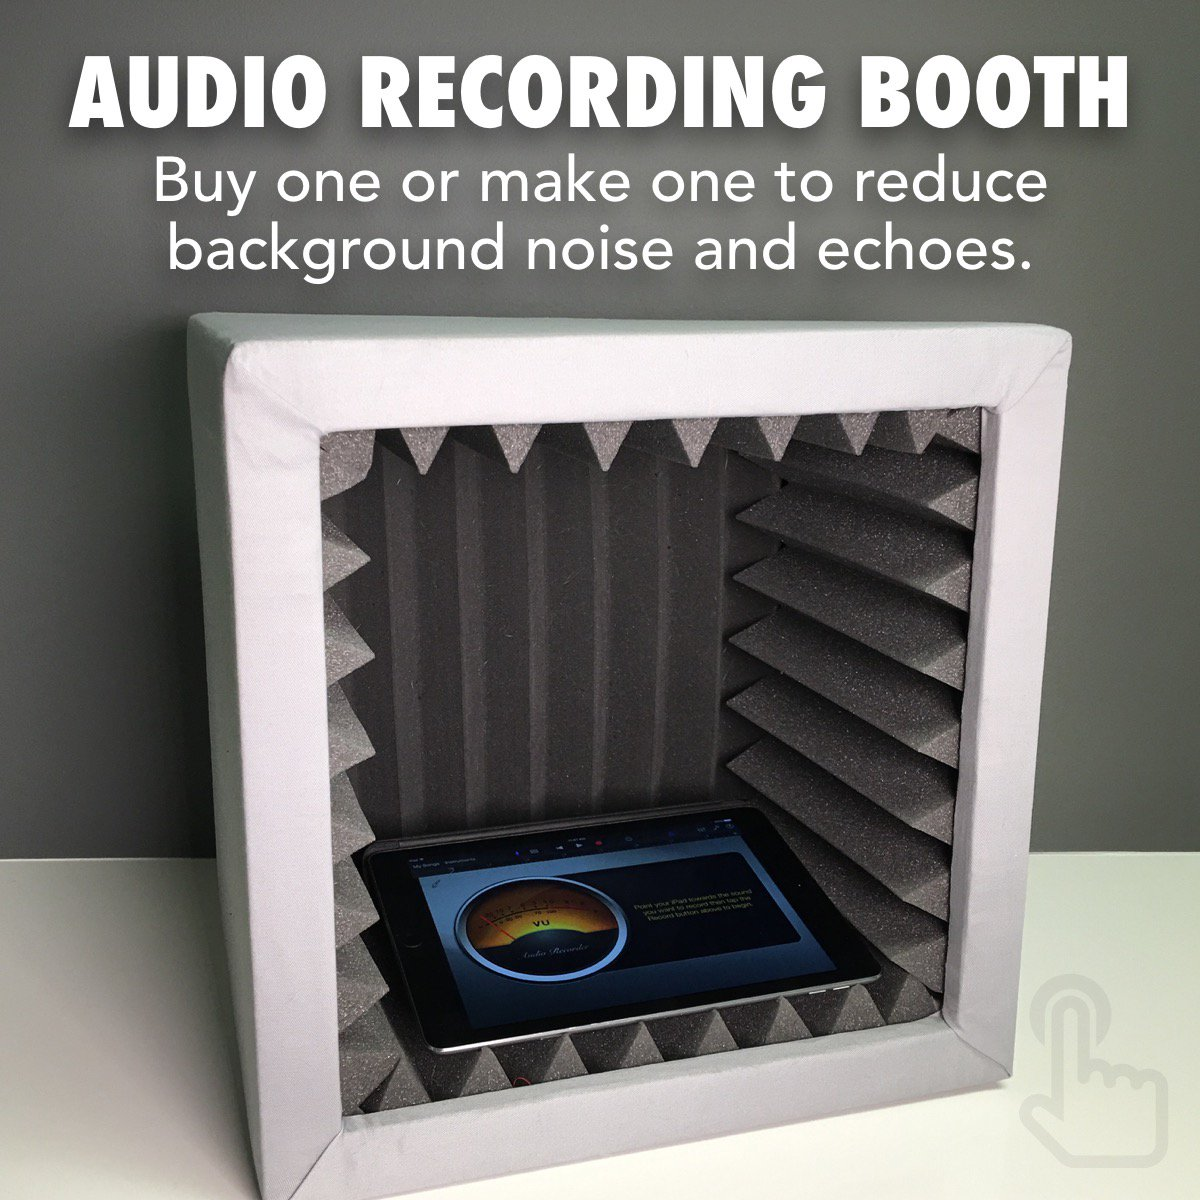 Classrooms are noisy places for audio recording. Here's a way to cut down the background noise…  #AETC2016 ' https://t.co/Va6fy2bw53 #feedly